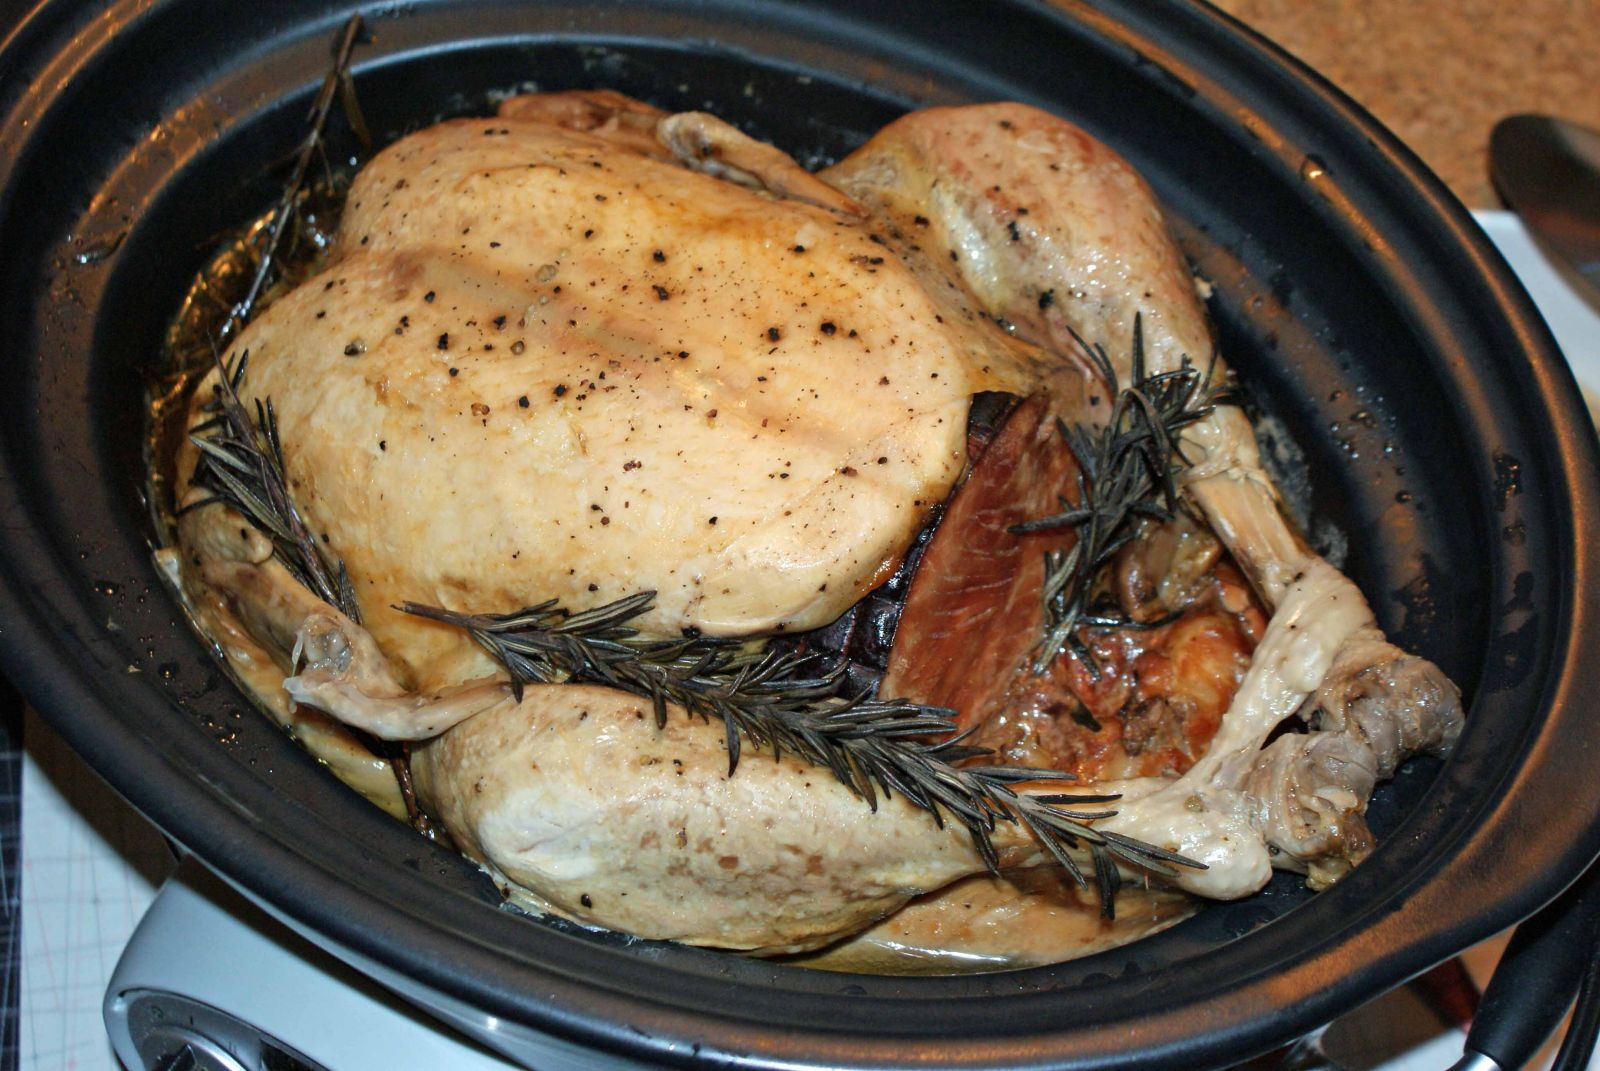 Turkey in slow cooker